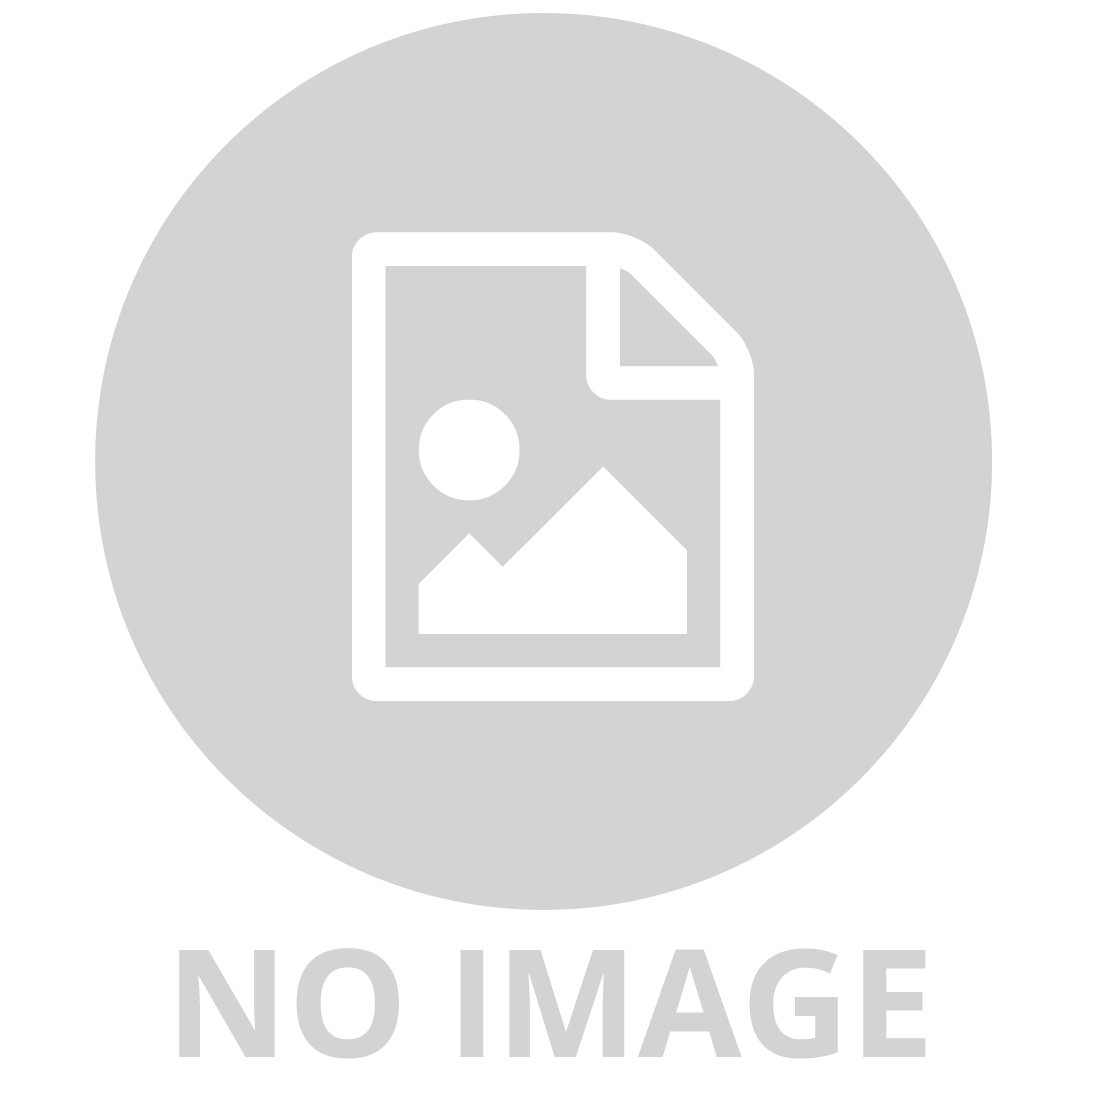 WOVEN BASKET PURPLE/WHITE